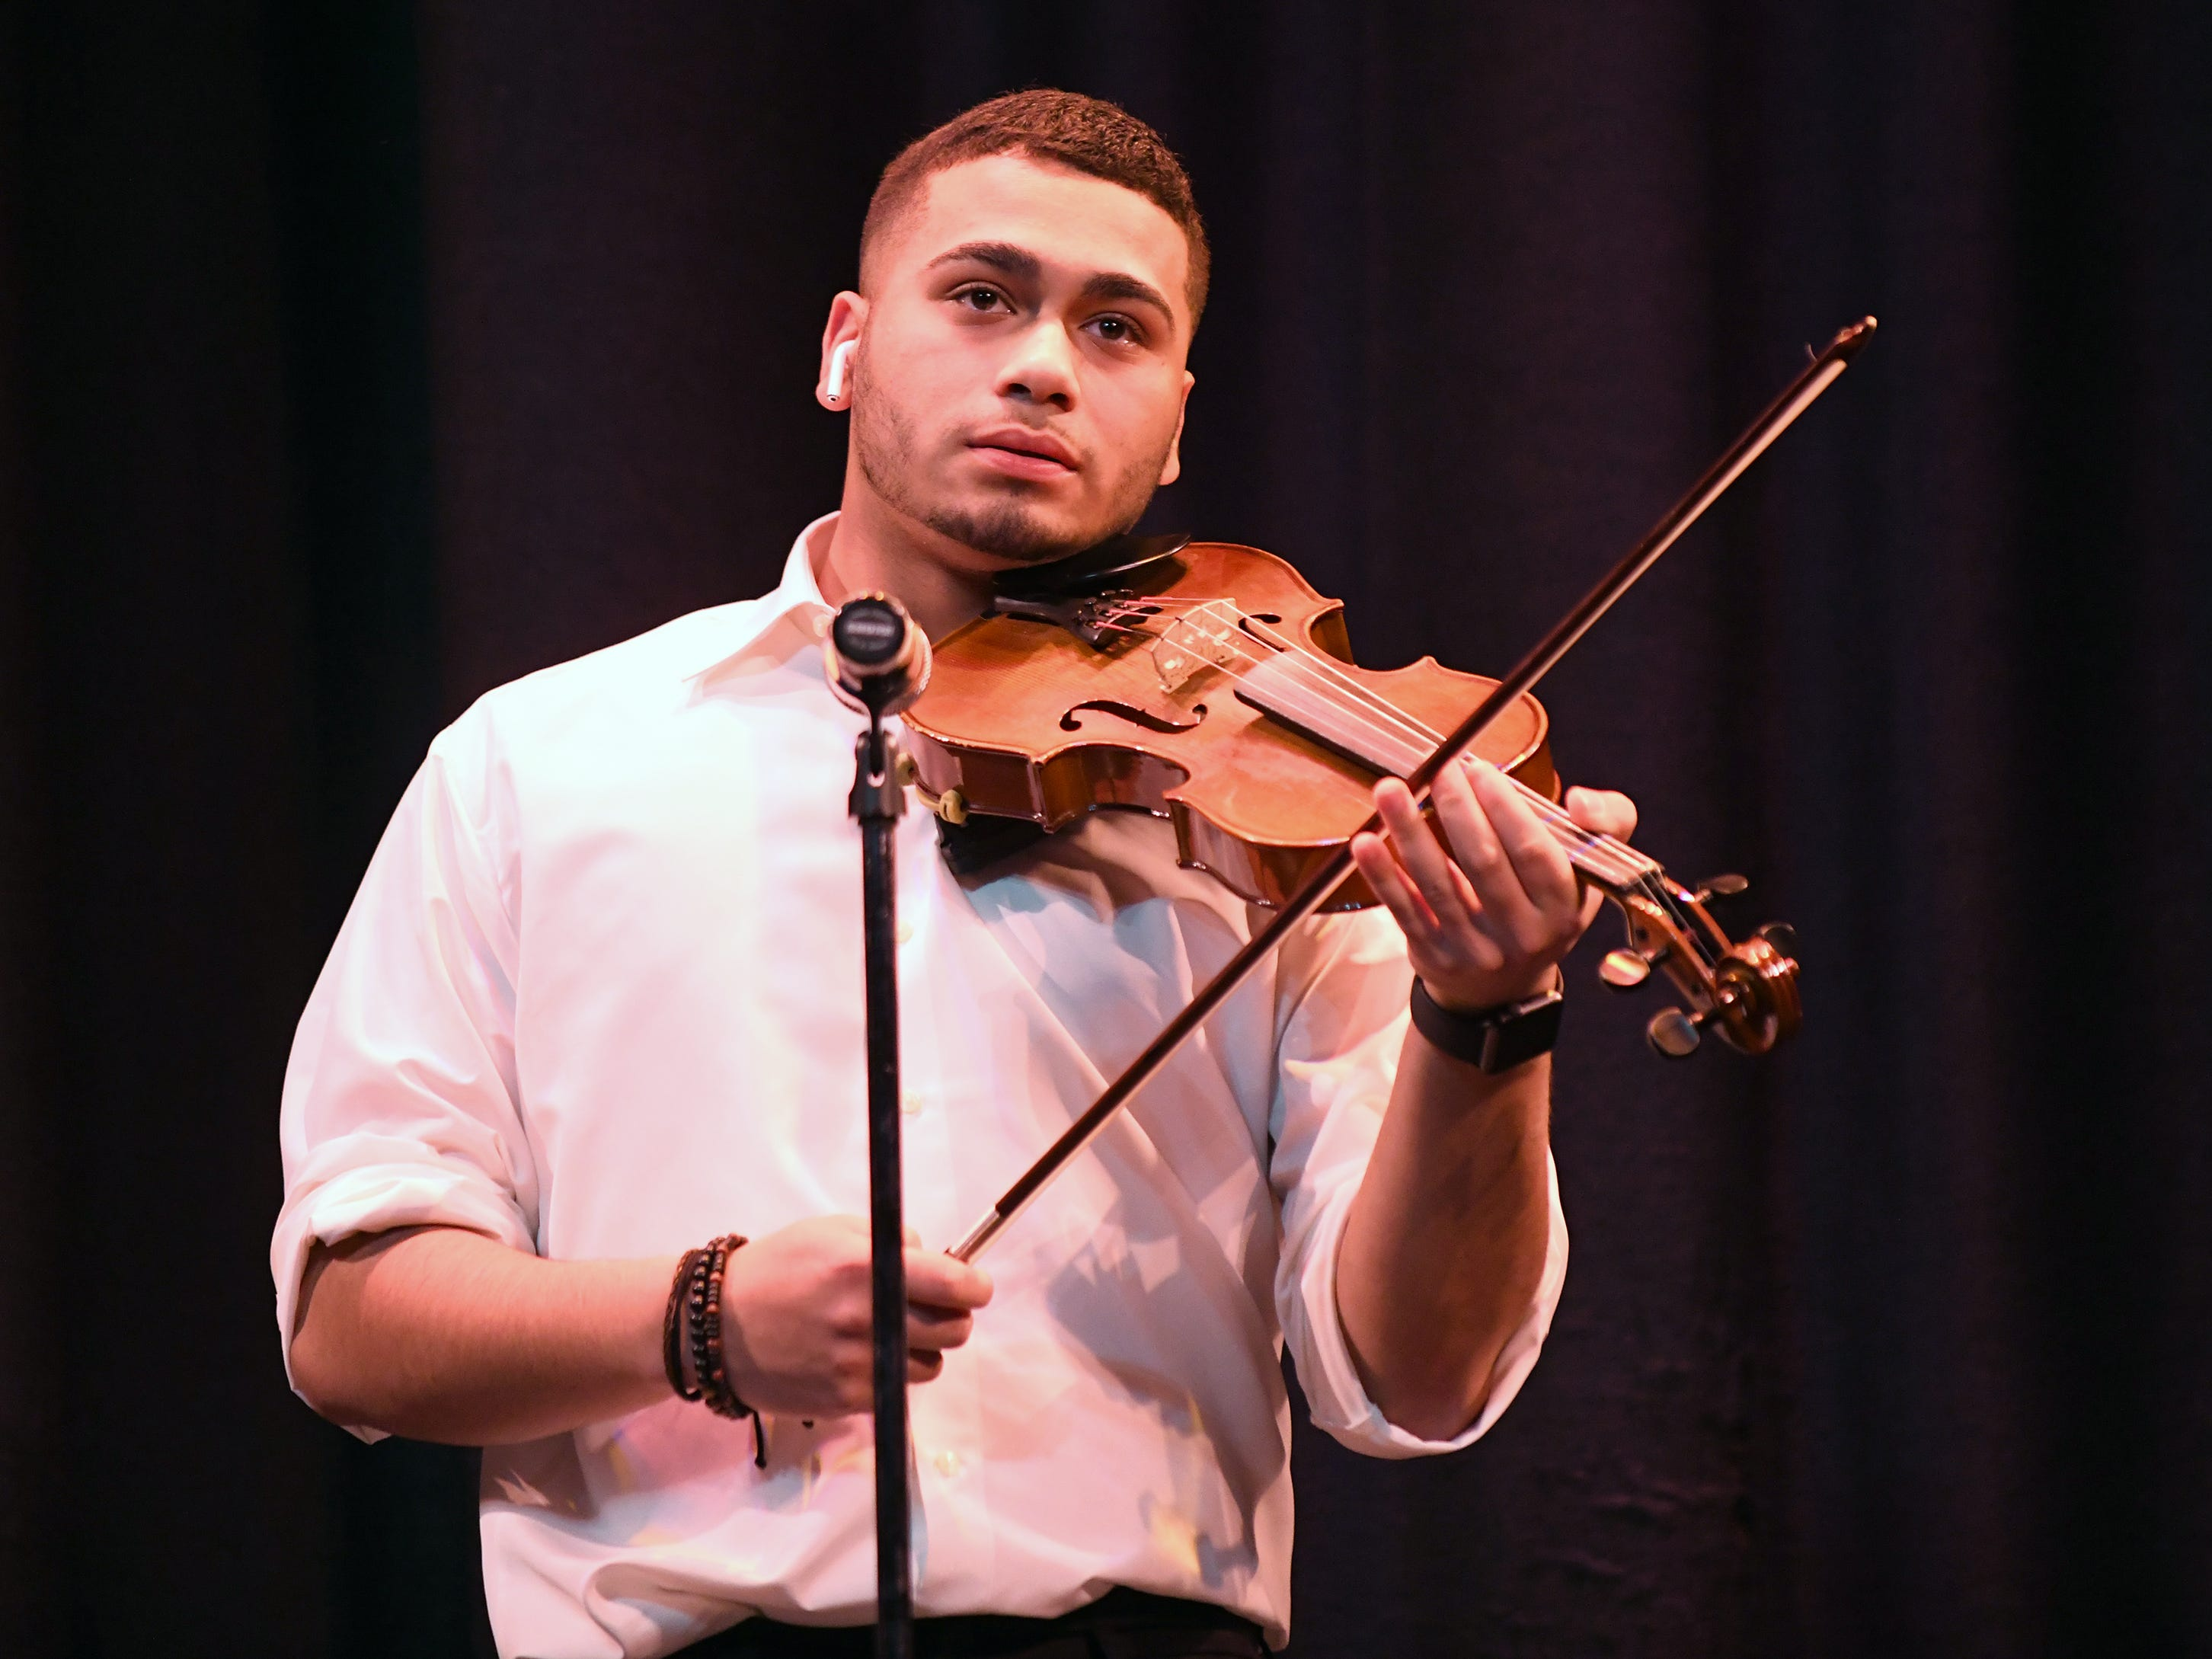 Colby Martinez performs during the talent portion of Mr. Vineland 2019 at Vineland High School on Thursday, January 10.